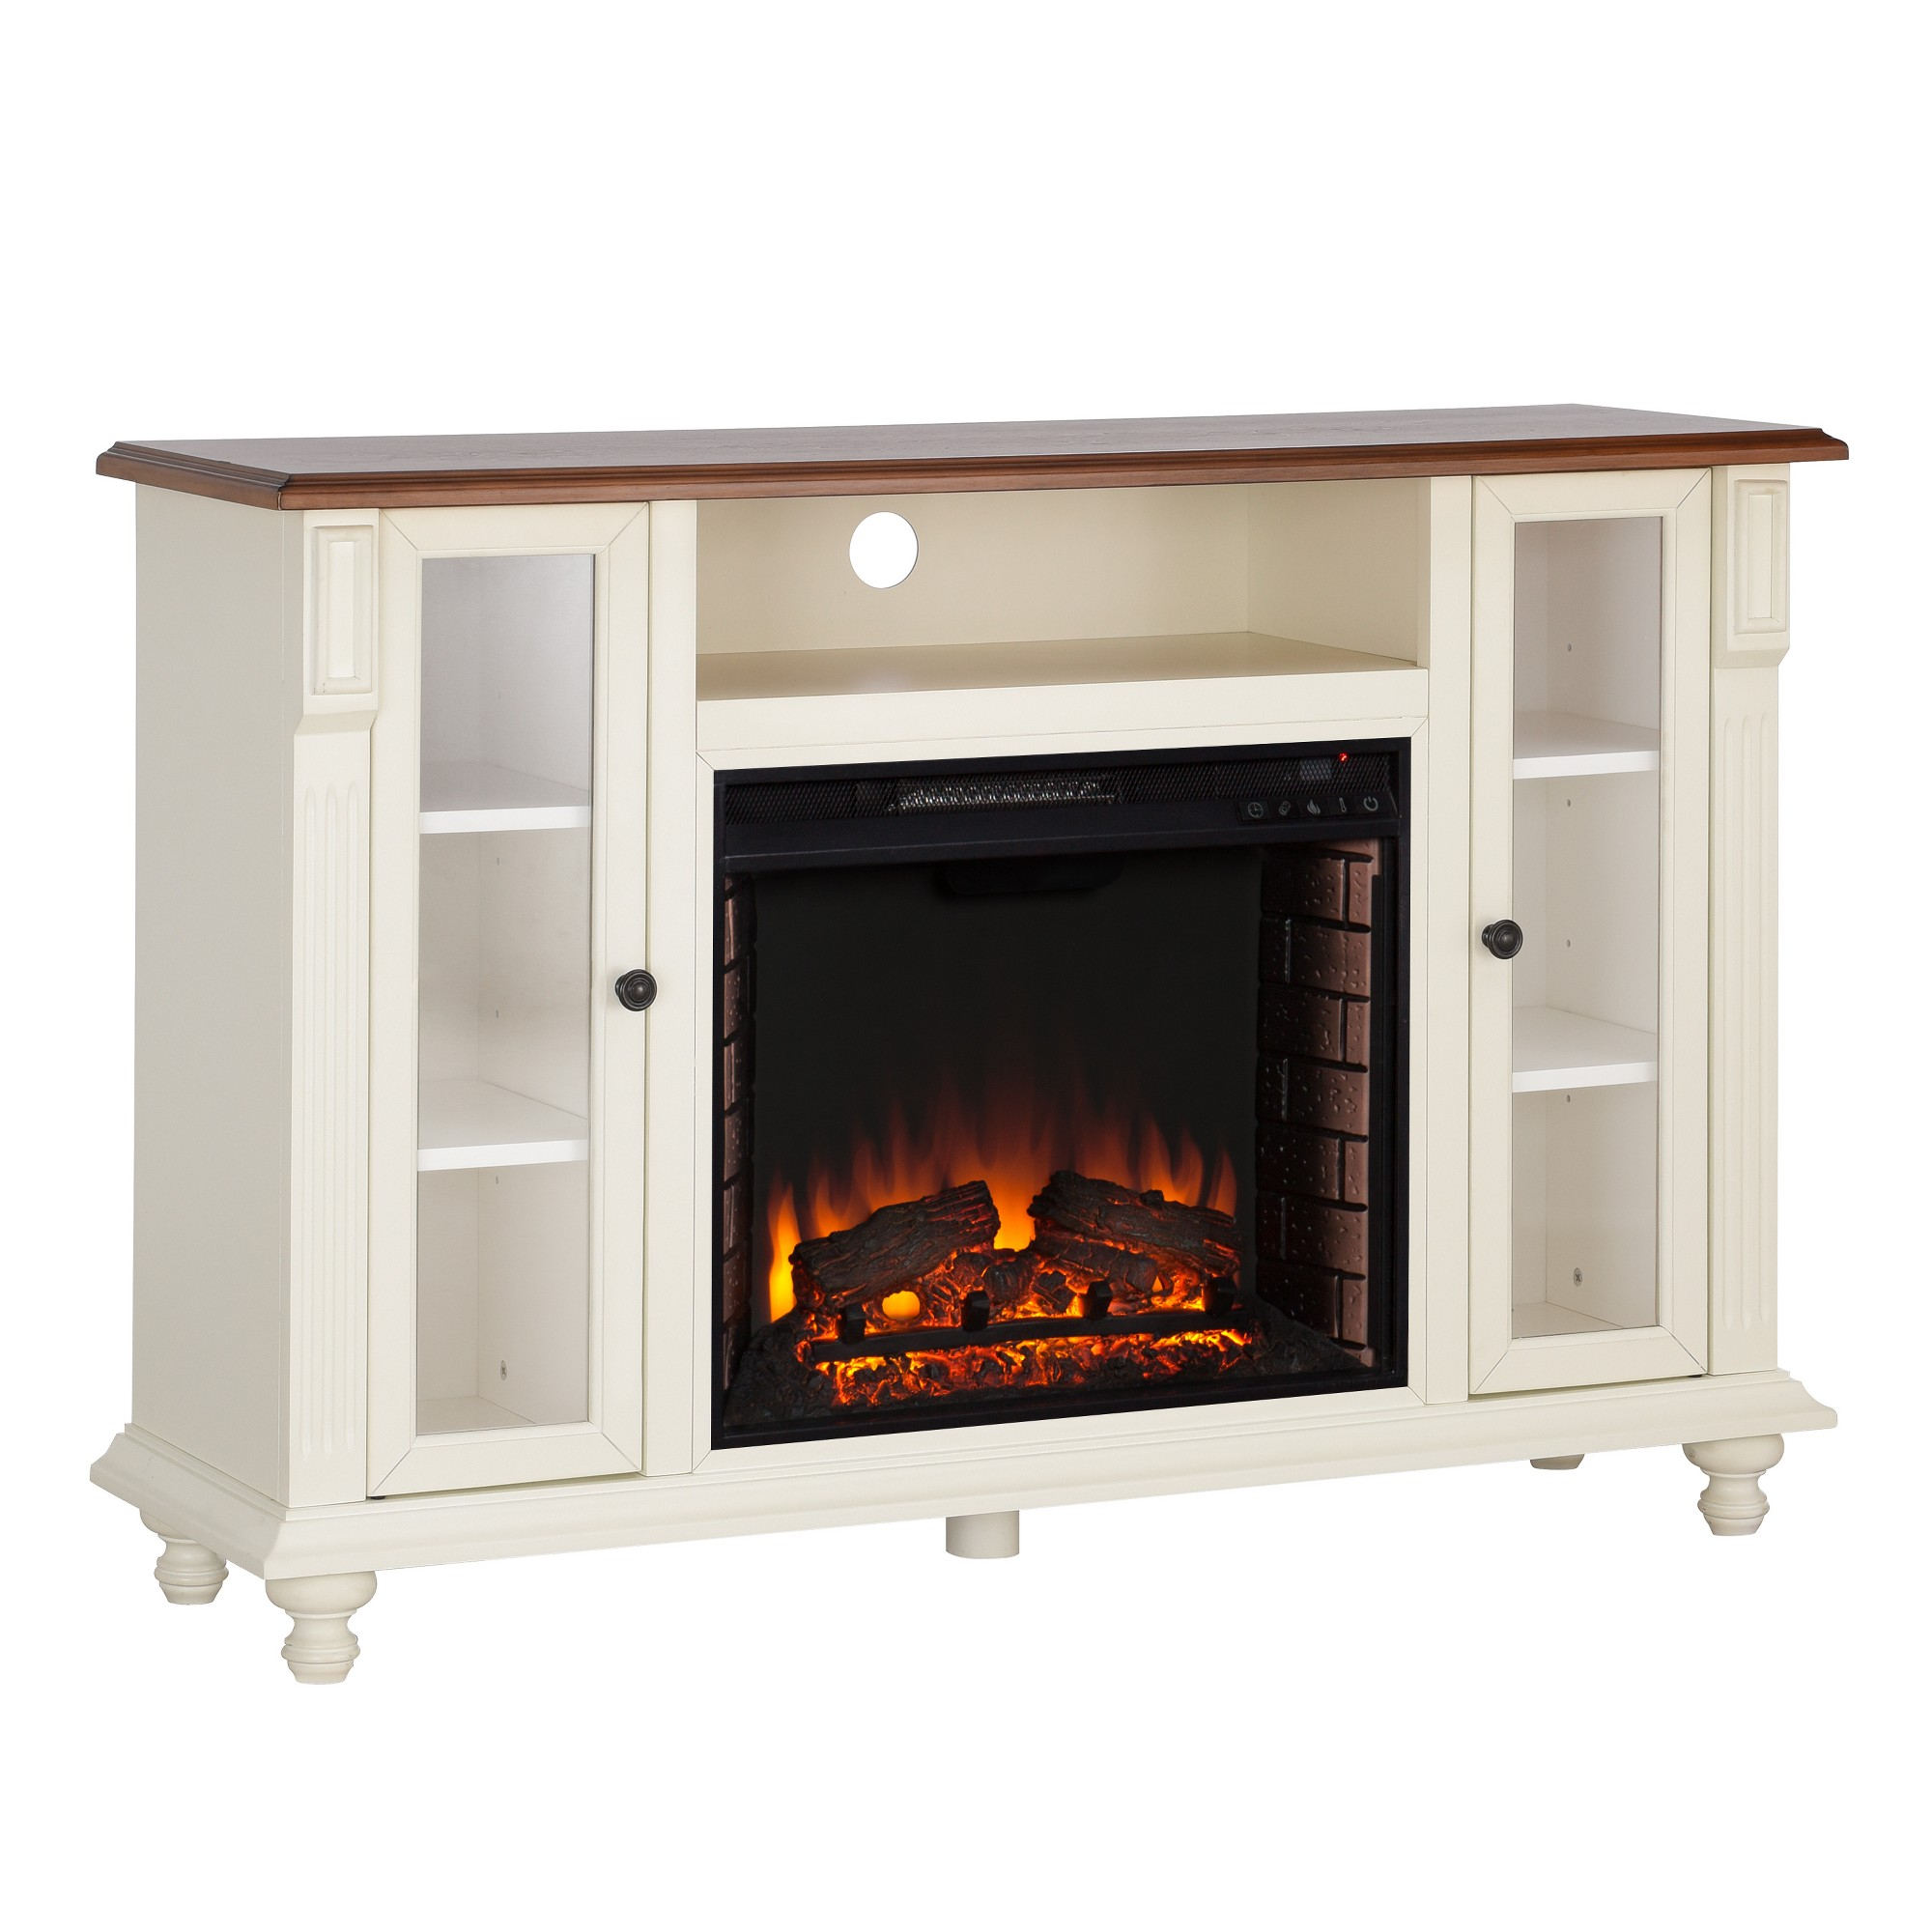 Captio Electric Fireplace Tv Stand Antique White Aiden Lane